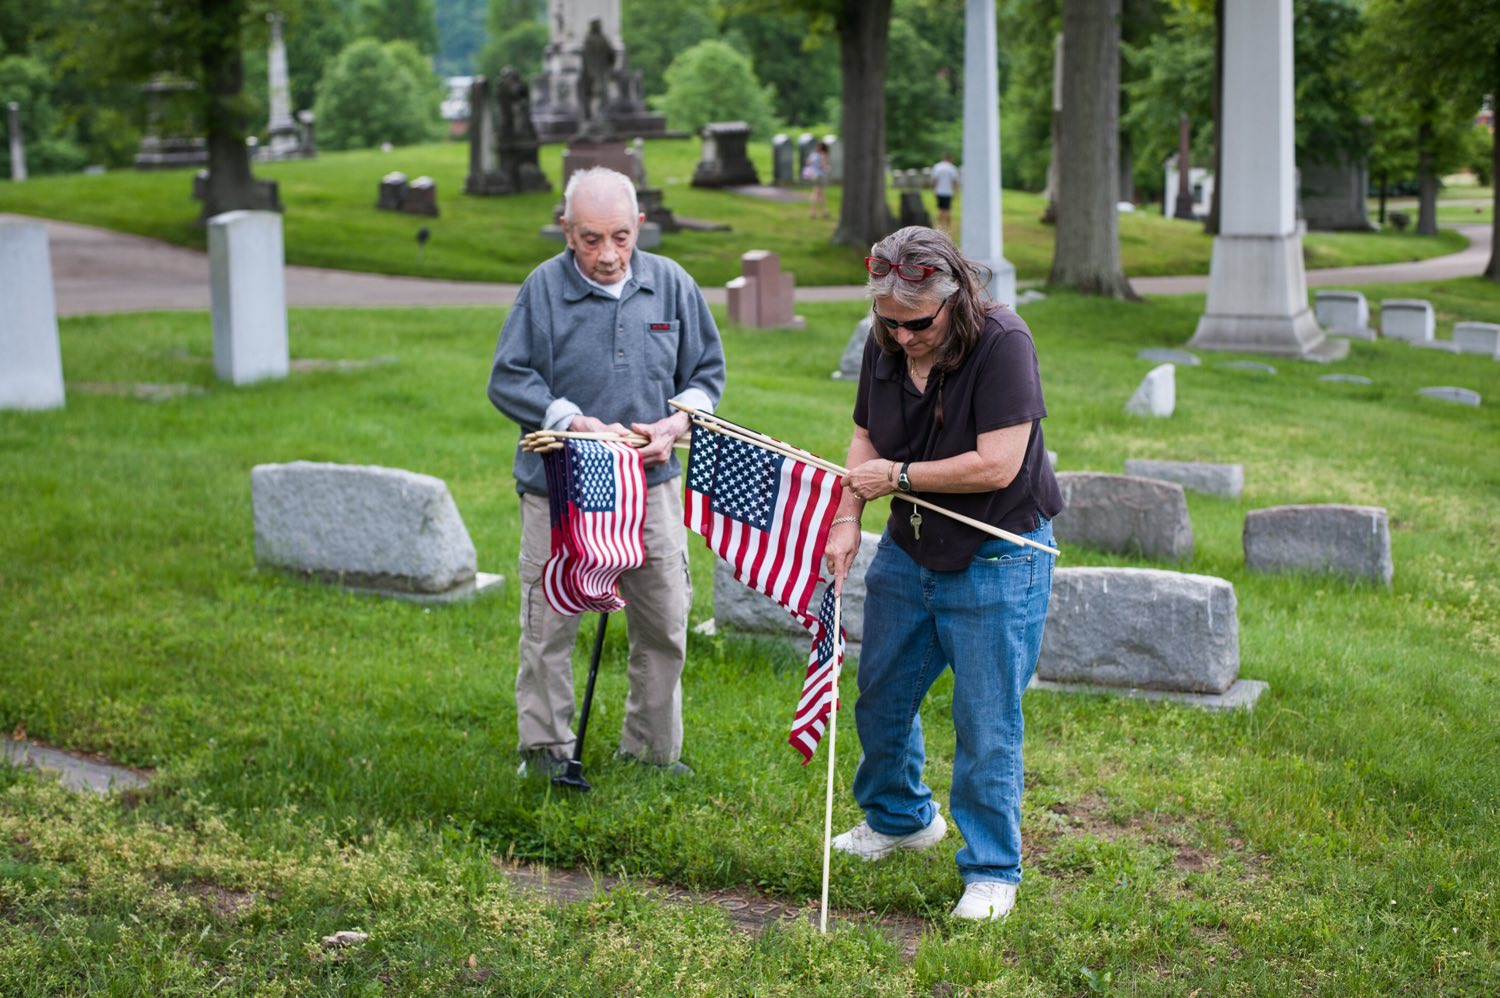 "Event organizers Marlene Scholze, right, 58, and World War II veteran Pietro Fantone, 94, both of Bloomfield, volunteer to place American flags at the graves of veterans on Monday, May 21, 2018, in preparation for Memorial Day at Allegheny Cemetery in Lawrenceville. ""I have tears in my eyes every time I come here,"" said Fantone, who has been coming to volunteer to place flags at the graves of veterans for 69 years. (Stephanie Strasburg/Post-Gazette)"